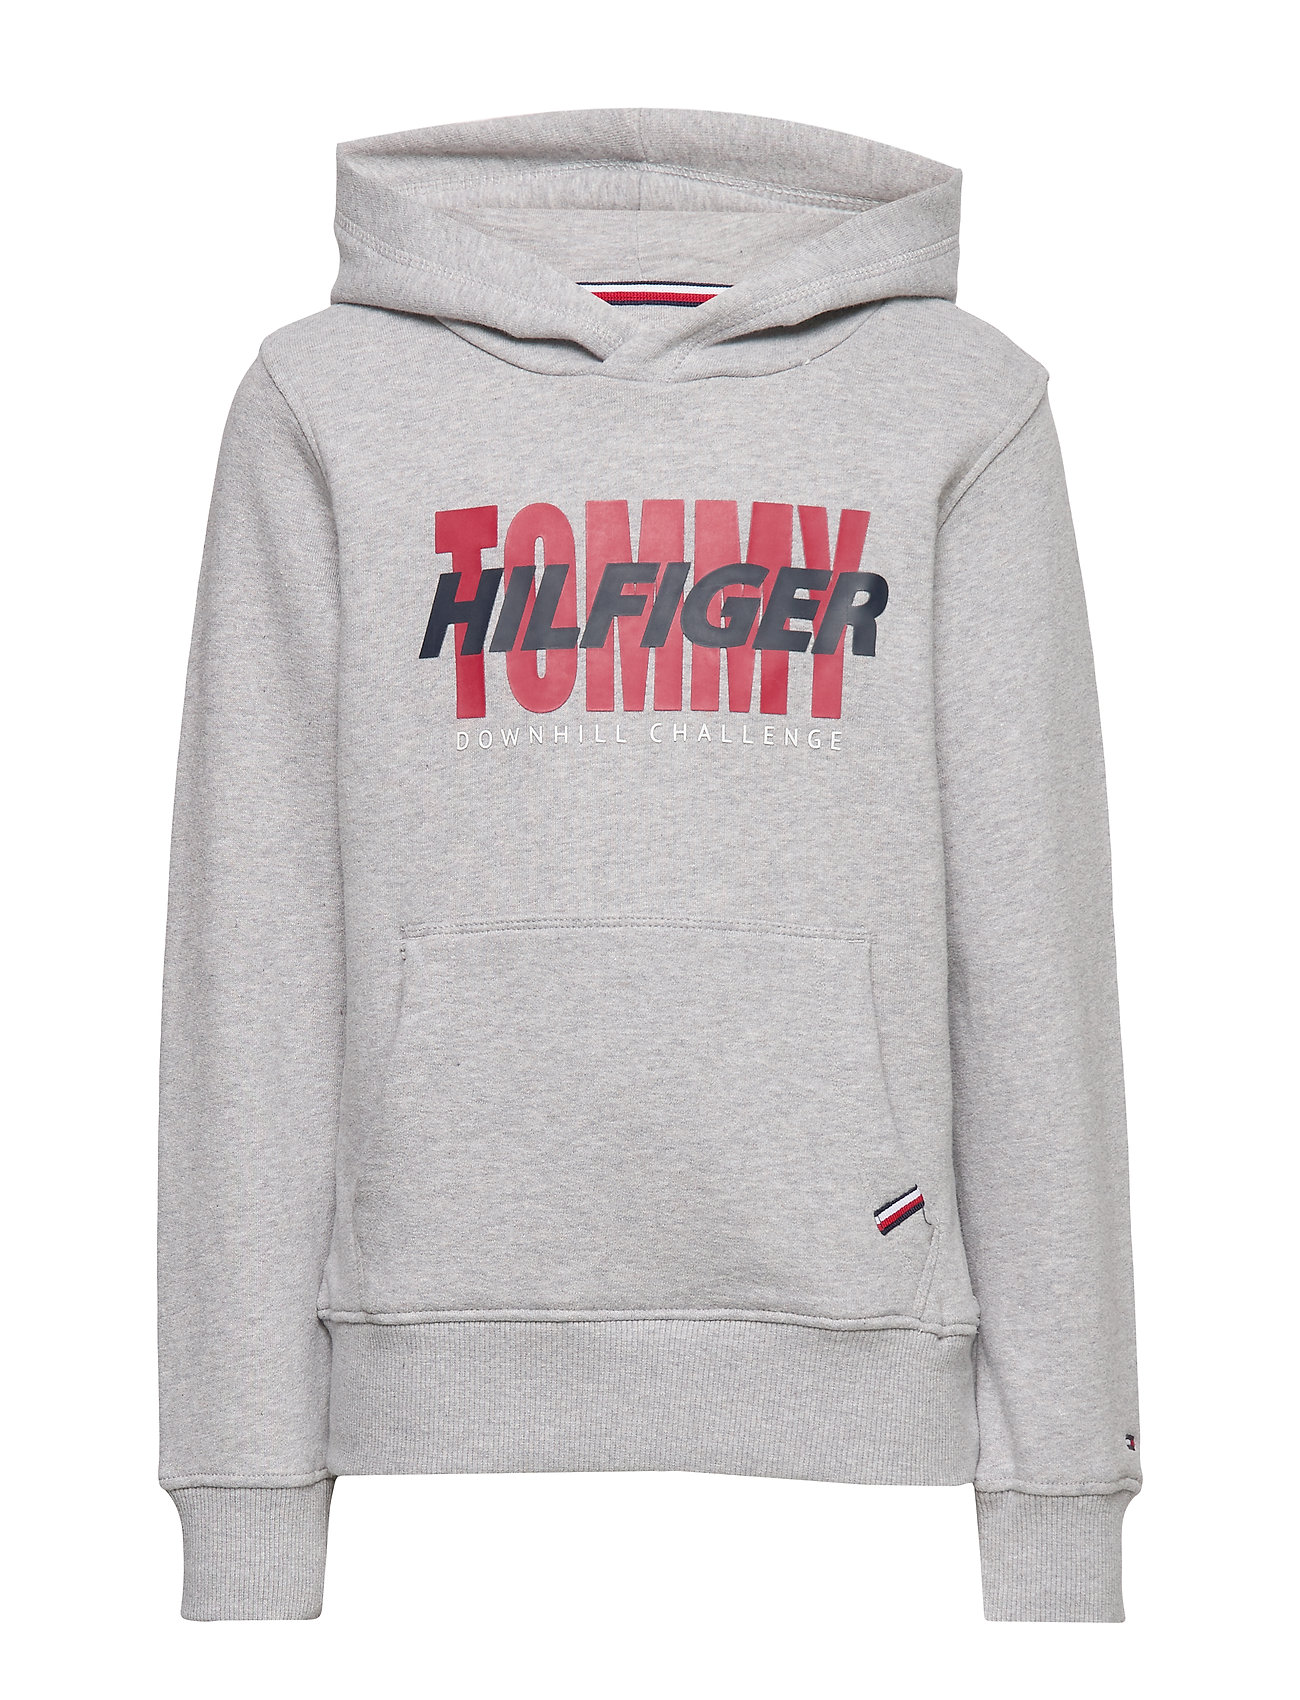 Tommy Hilfiger ARTWORK HOODIE - GREY HEATHER